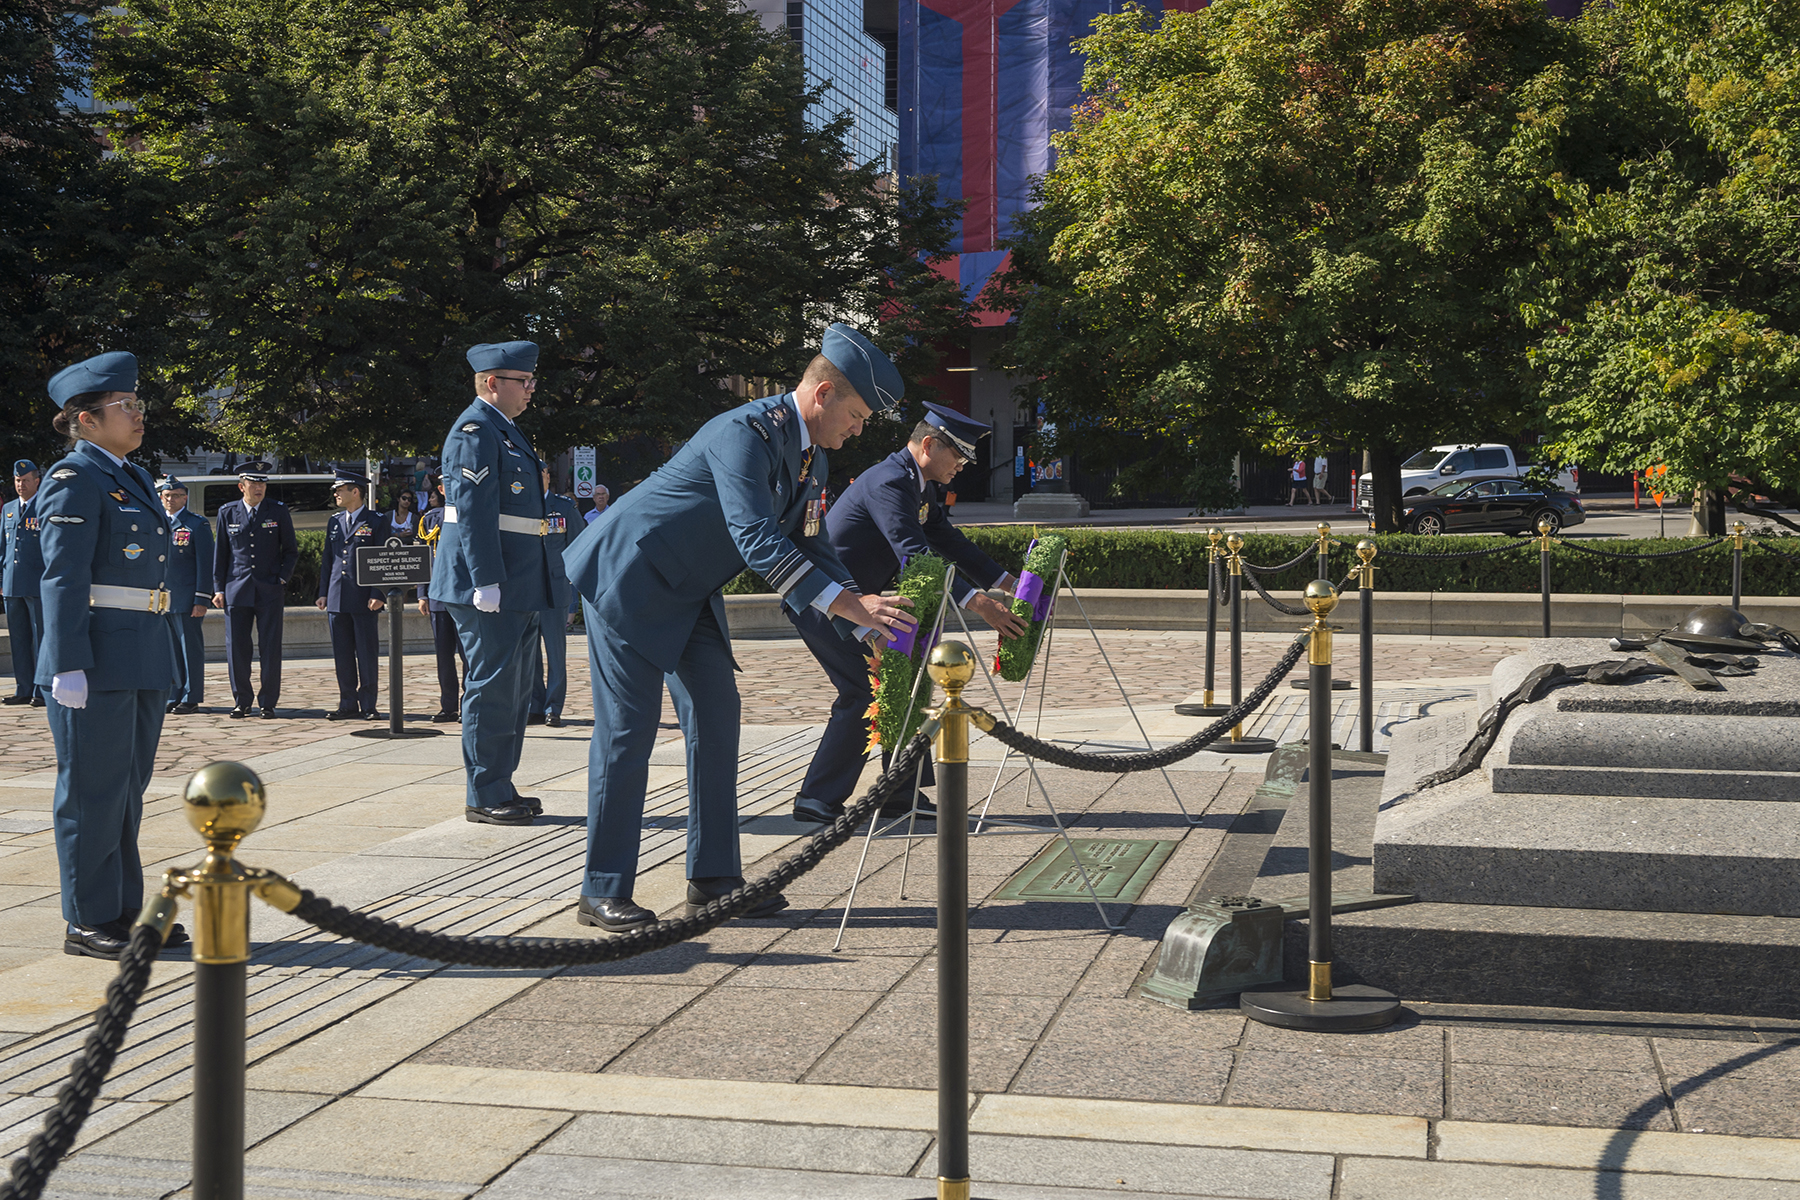 In a public square in a downtown area, two men in blue uniforms, one darker blue than the other, lay wreaths in front of ranks of other men in blue uniforms..